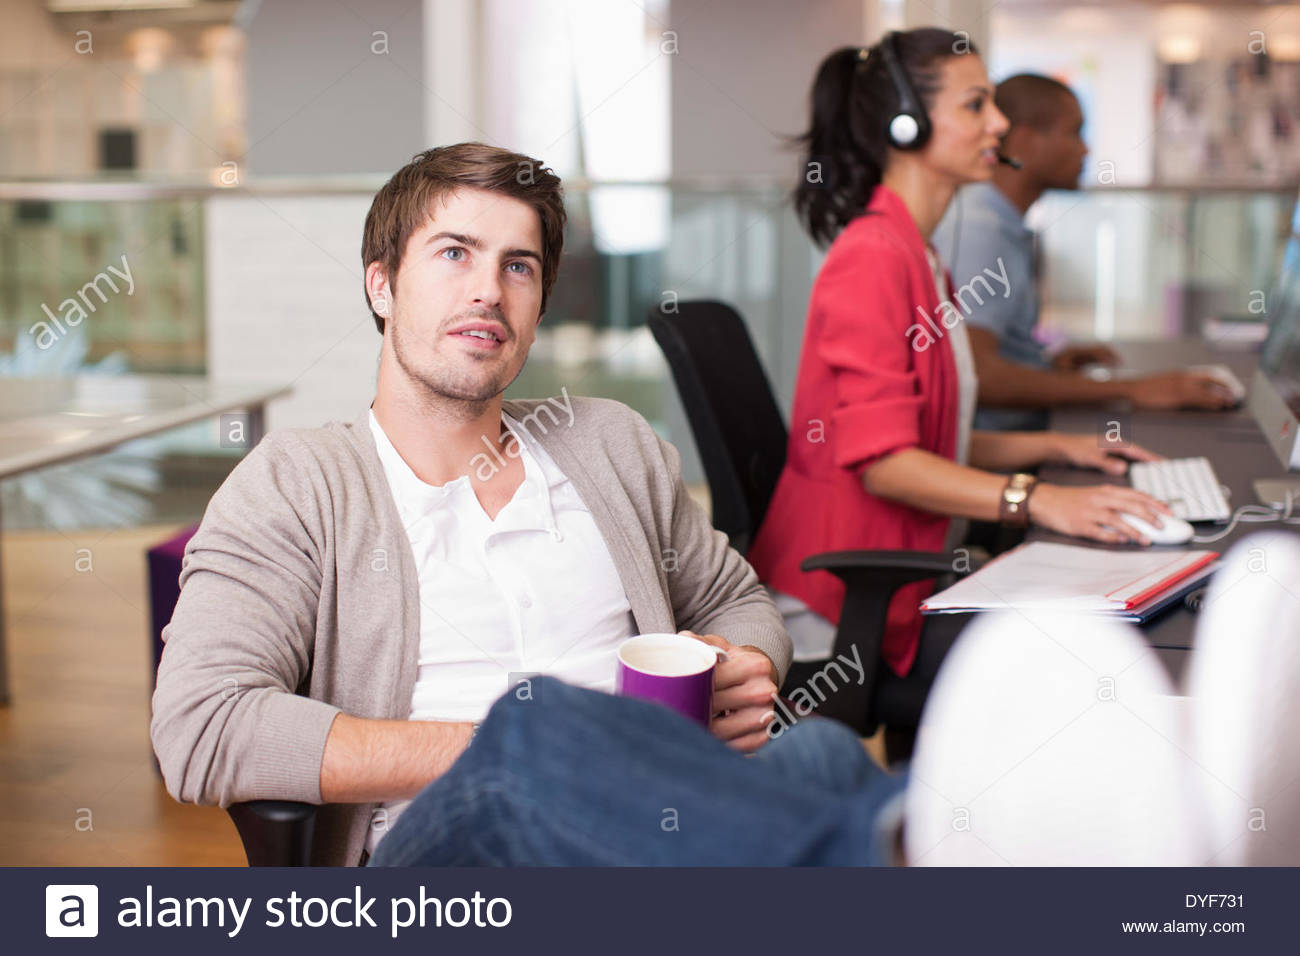 Businessman drinking coffee with feet up in office - Stock Image